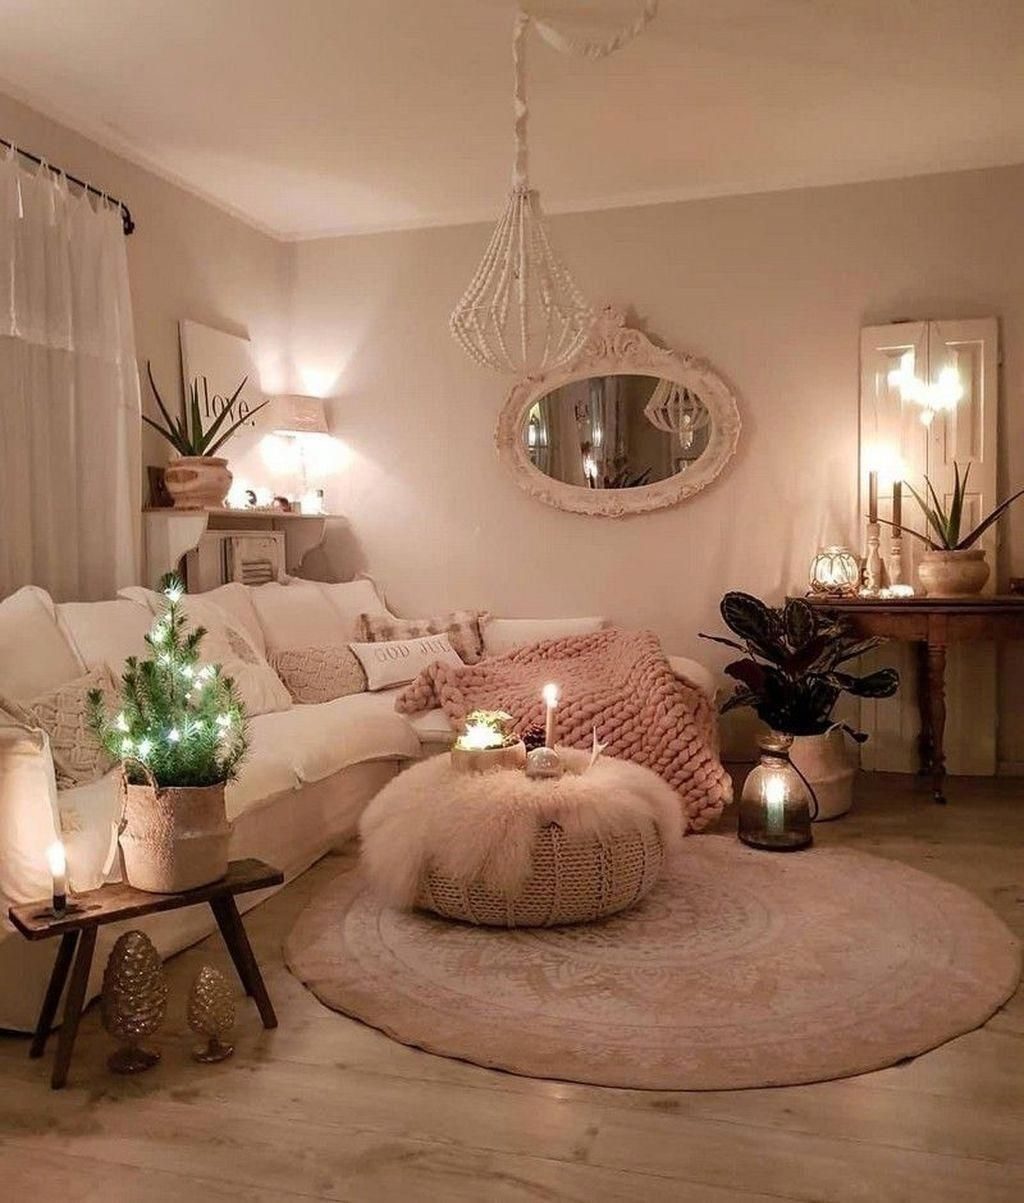 Small Apartment Dining Roomideas: Decorating With Flowers: Learn Amazing Ideas And Practical